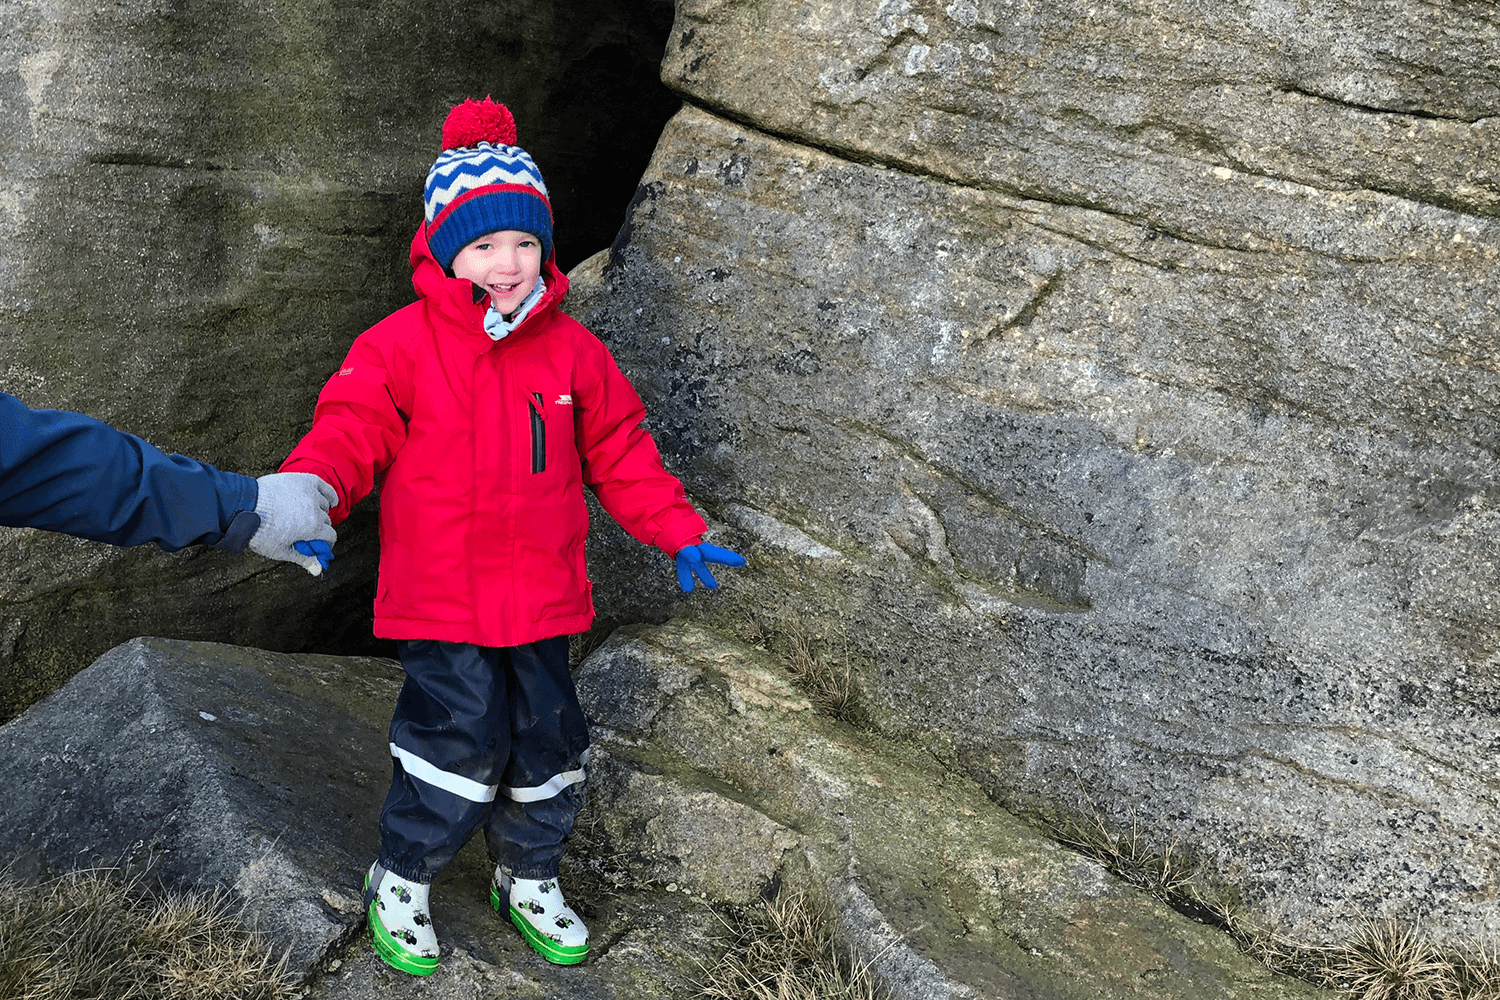 Gabe exploring the Bridestones